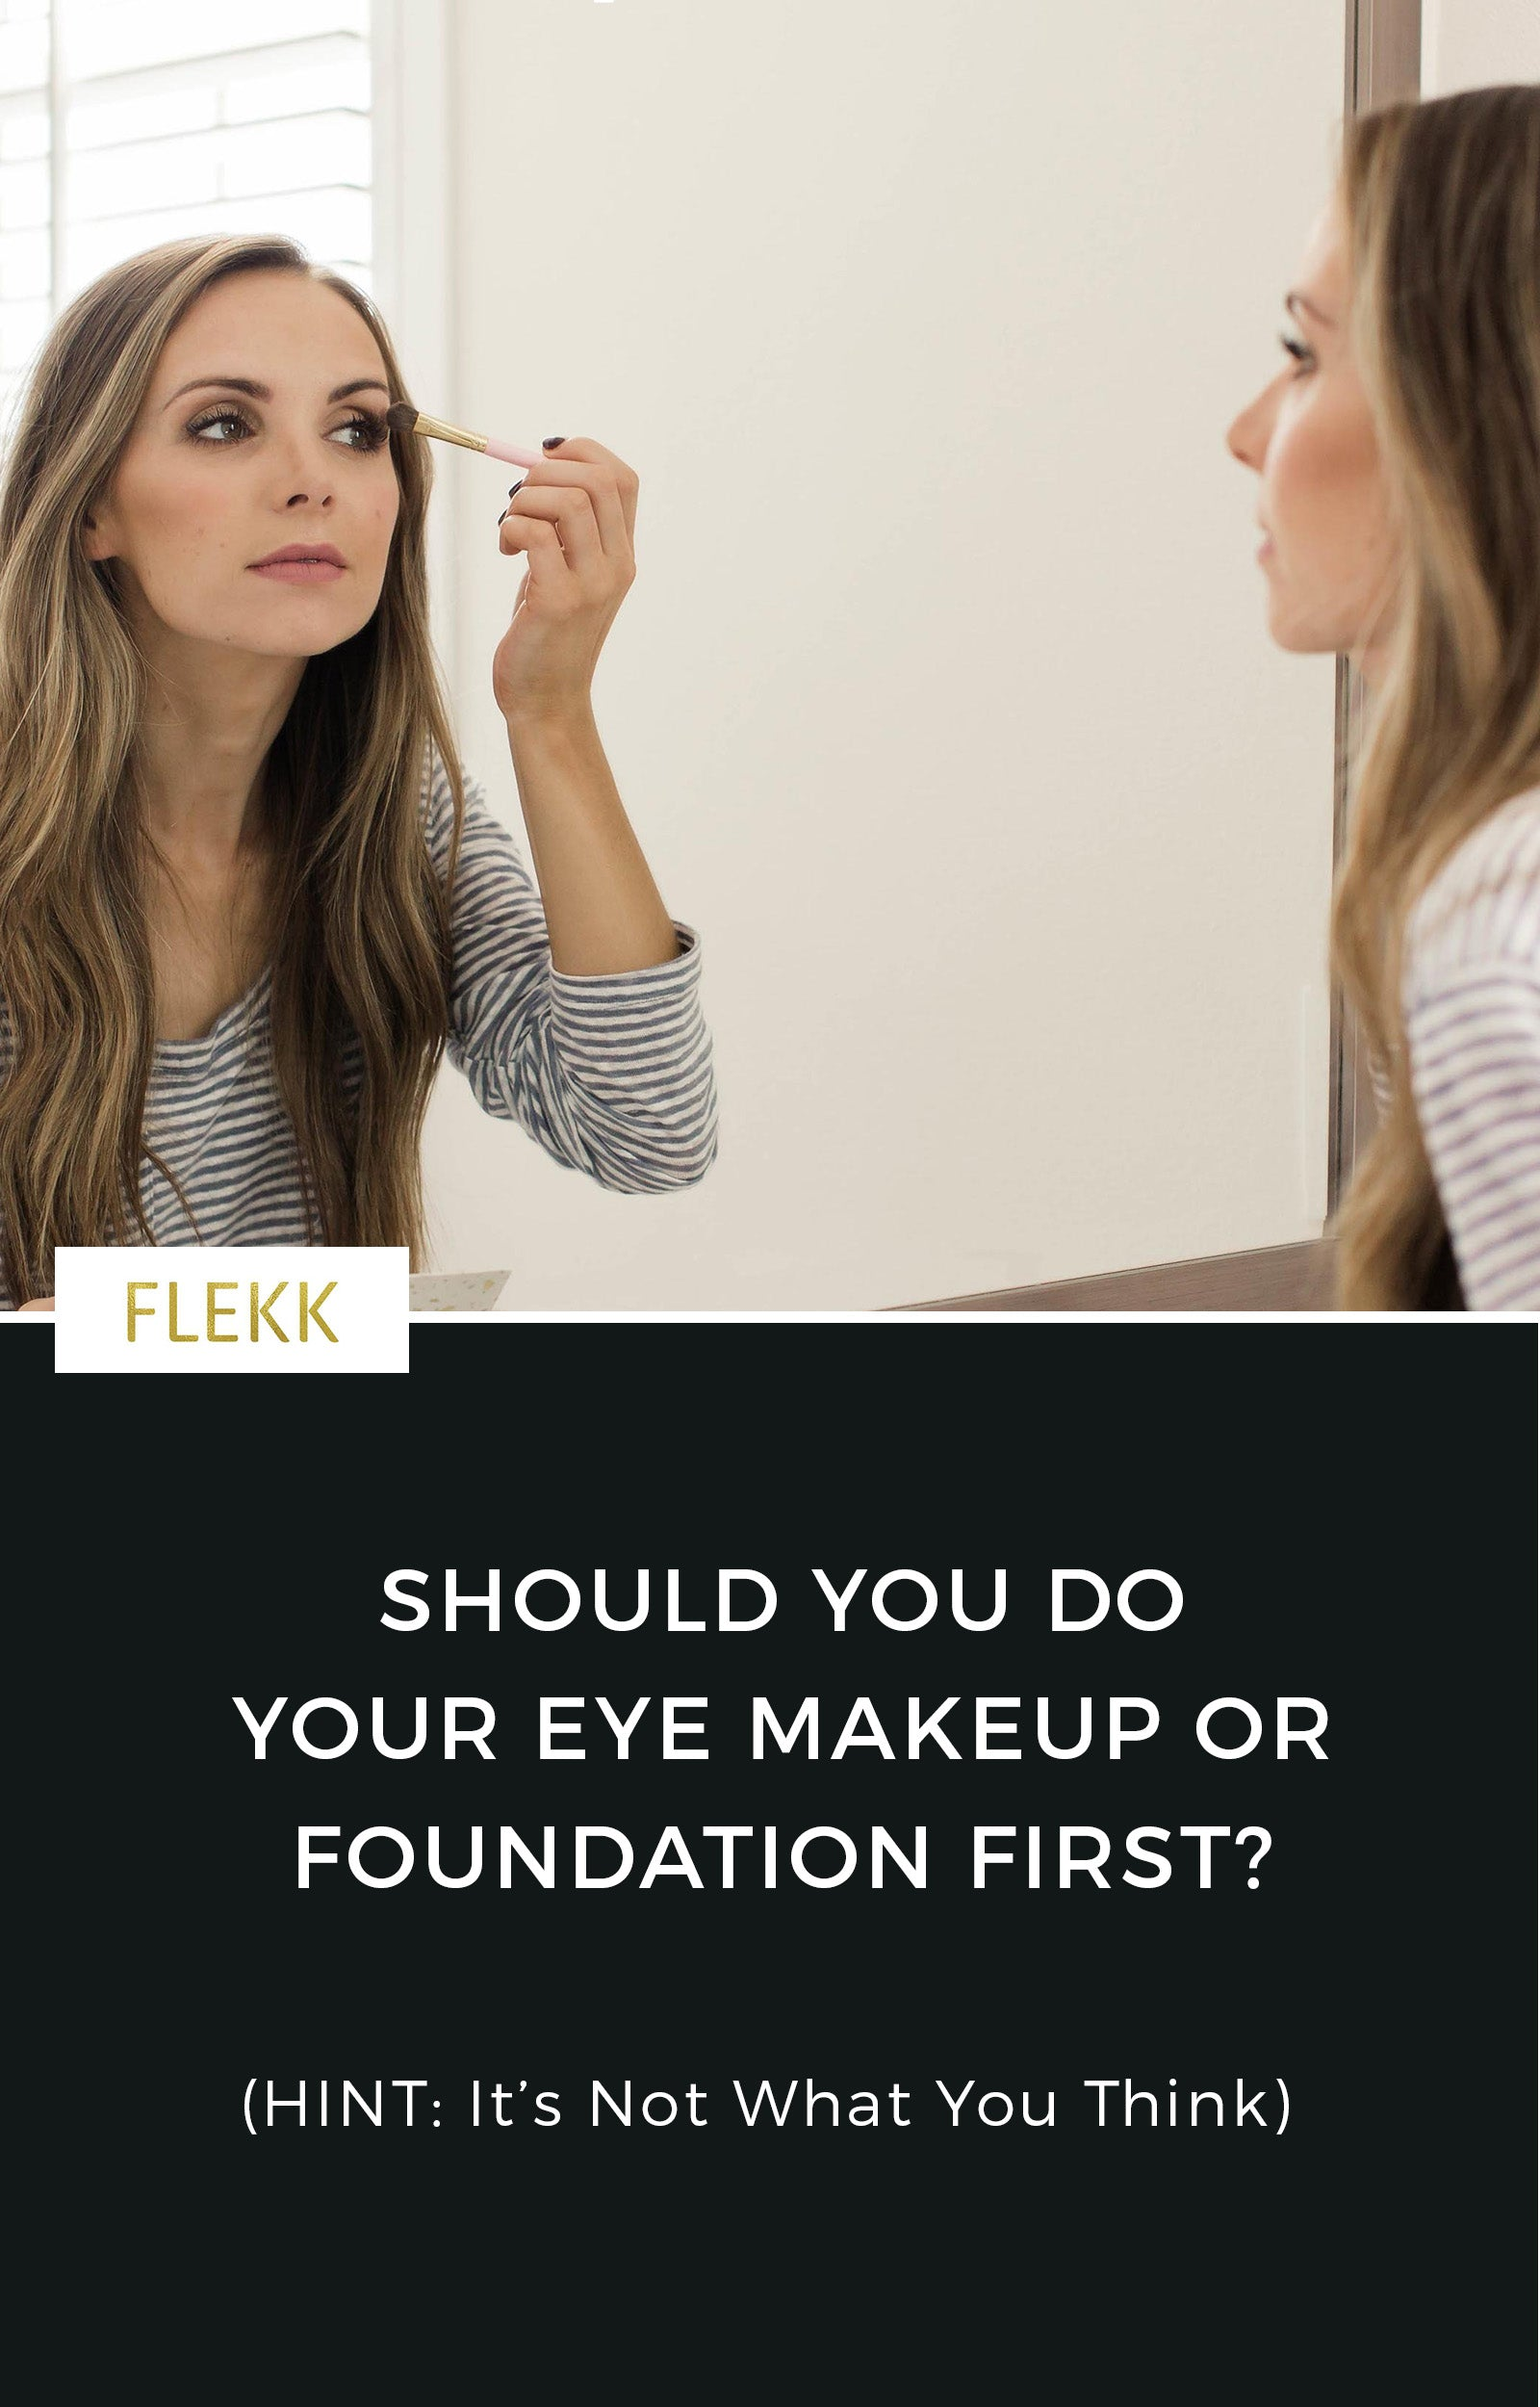 If you are like most people, you apply your eye makeup last after foundation, concealer, blush, and lipsticks.  One of my best makeup tips is to reverse this process and begin with eye makeup instead of foundation. Read on to see why! #flekkcosmetics #eyemakeuptips #eyeshadowtutorial #foundation #howtoapplyeyeshadow